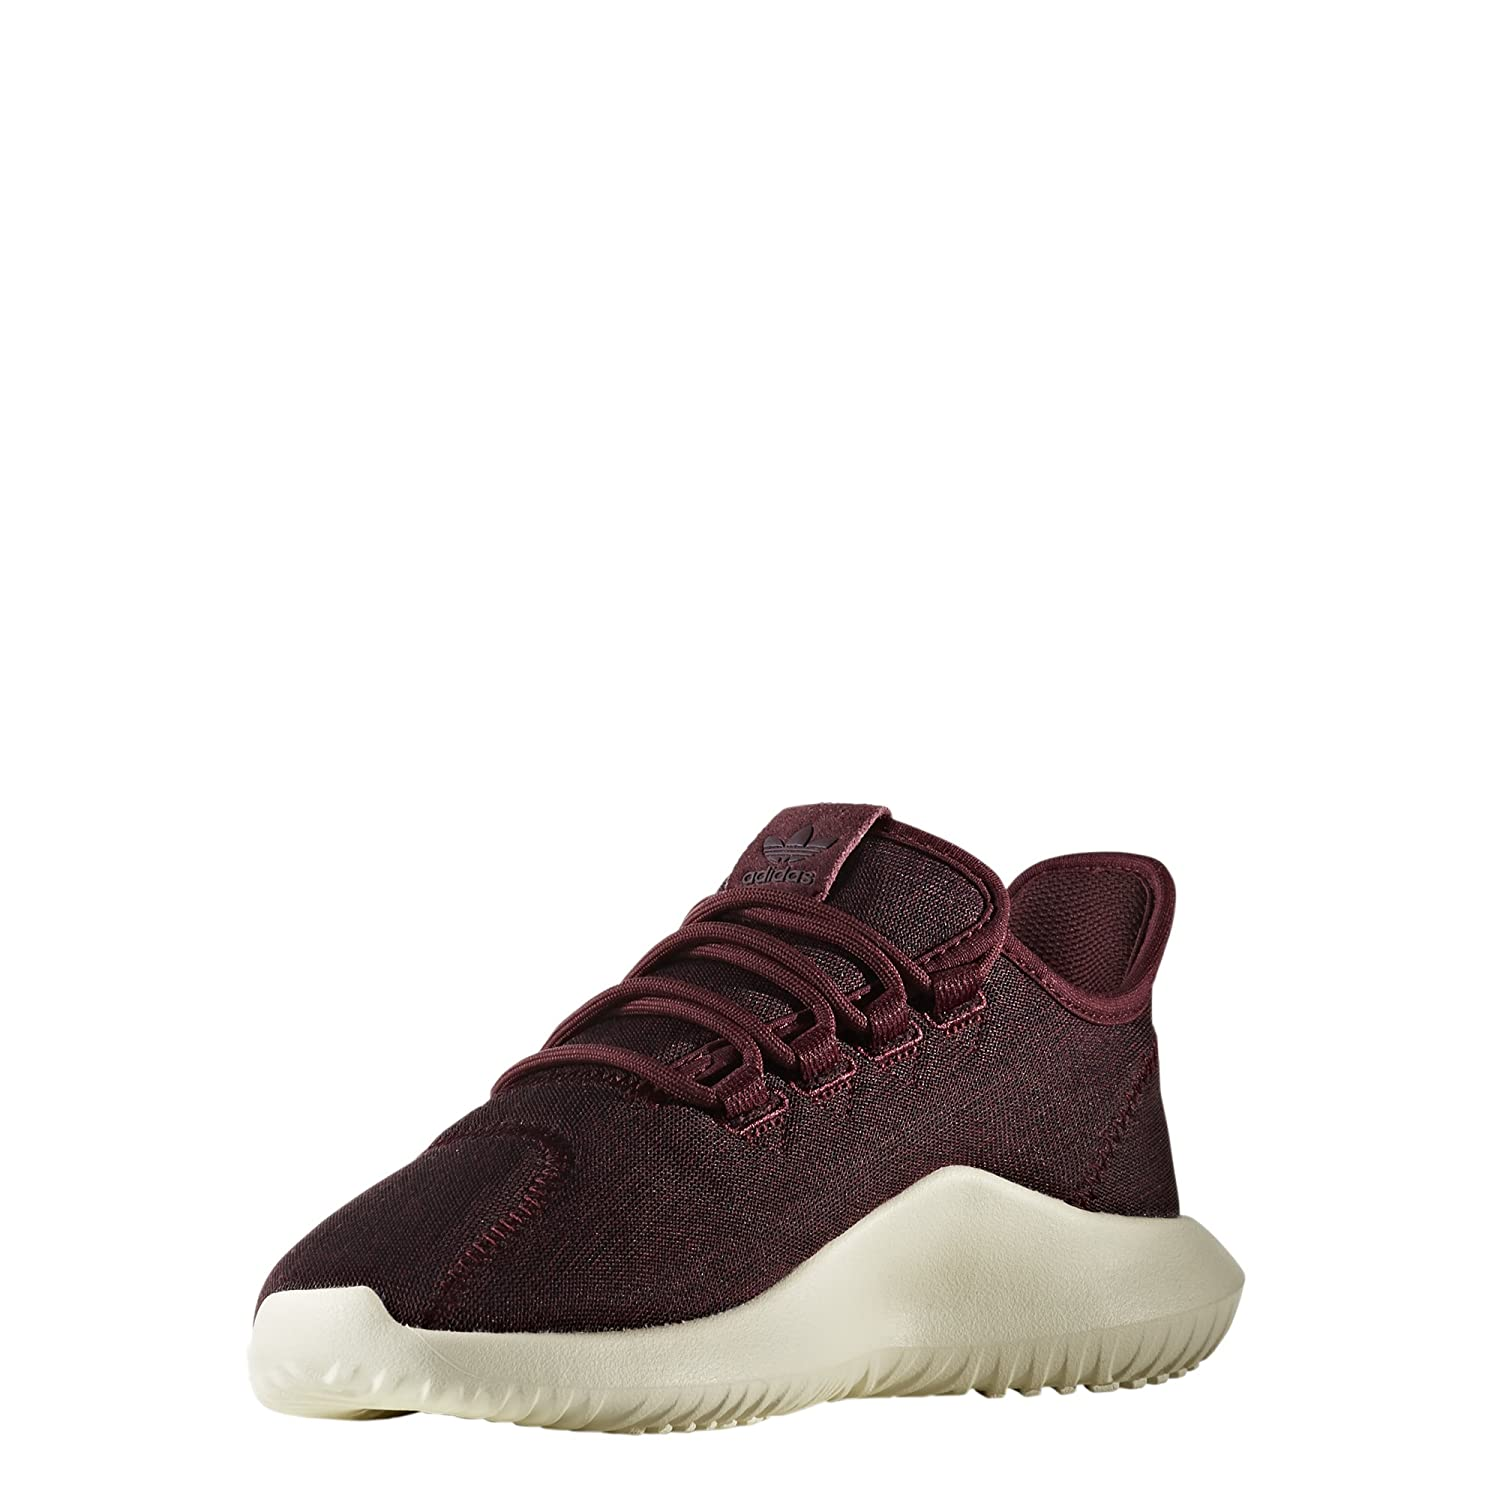 adidas Originals Women's Tubular Shadow W Fashion Sneaker B0714BXWV4 7 B(M) US|Maroon/Maroon/Legacy